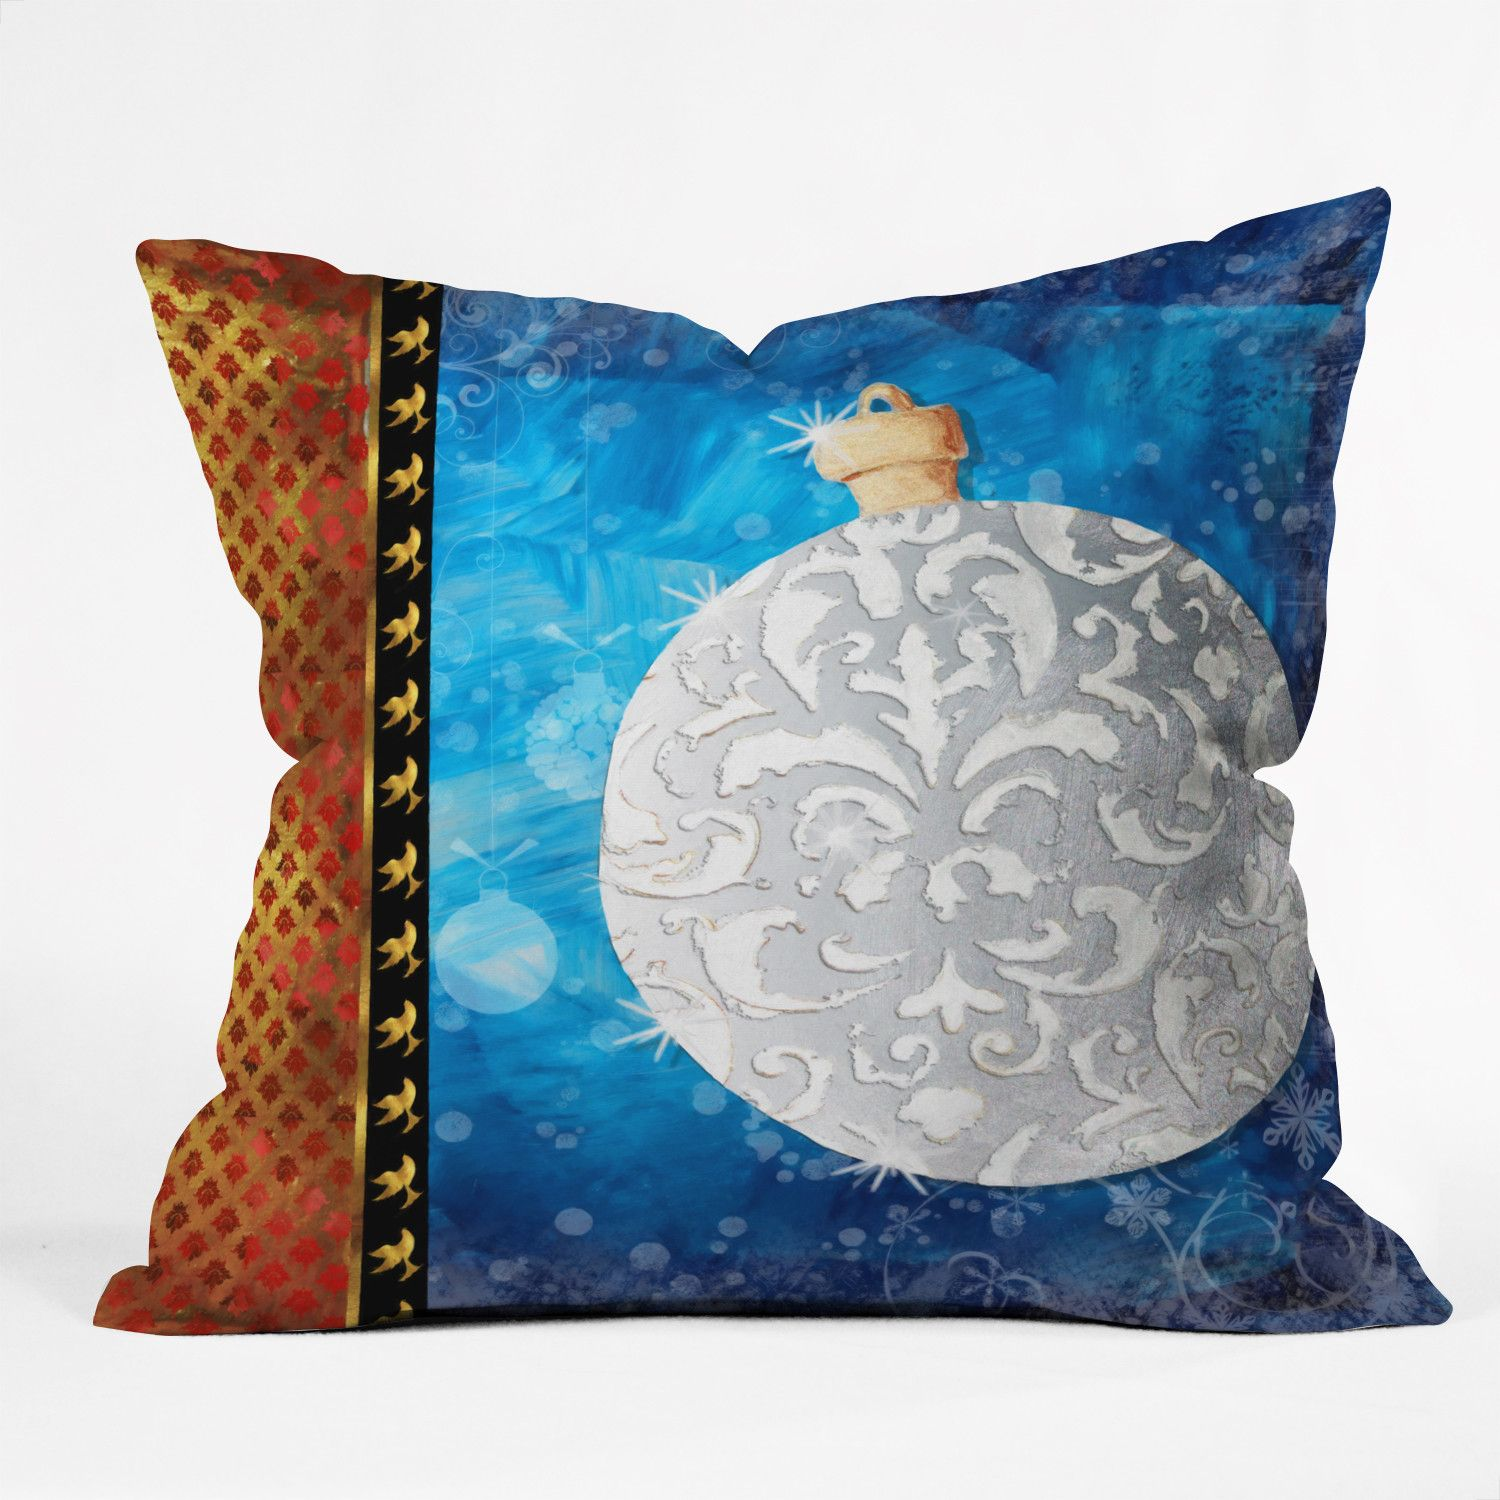 Madart Inc. Elegante Ornament Throw Pillow | Wayfair  #ornament #elegant #colorful #set #sophisticated #christmas  #winter #homedecor #home #decor #decorate #holidays #pillow #throwpillow  all rights reserved, copyright protected©  http://www.wayfair.com/DENY-Designs-Madart-Inc.-Elegante-Throw-Pillow-51764-thrpi-NDY14524.html